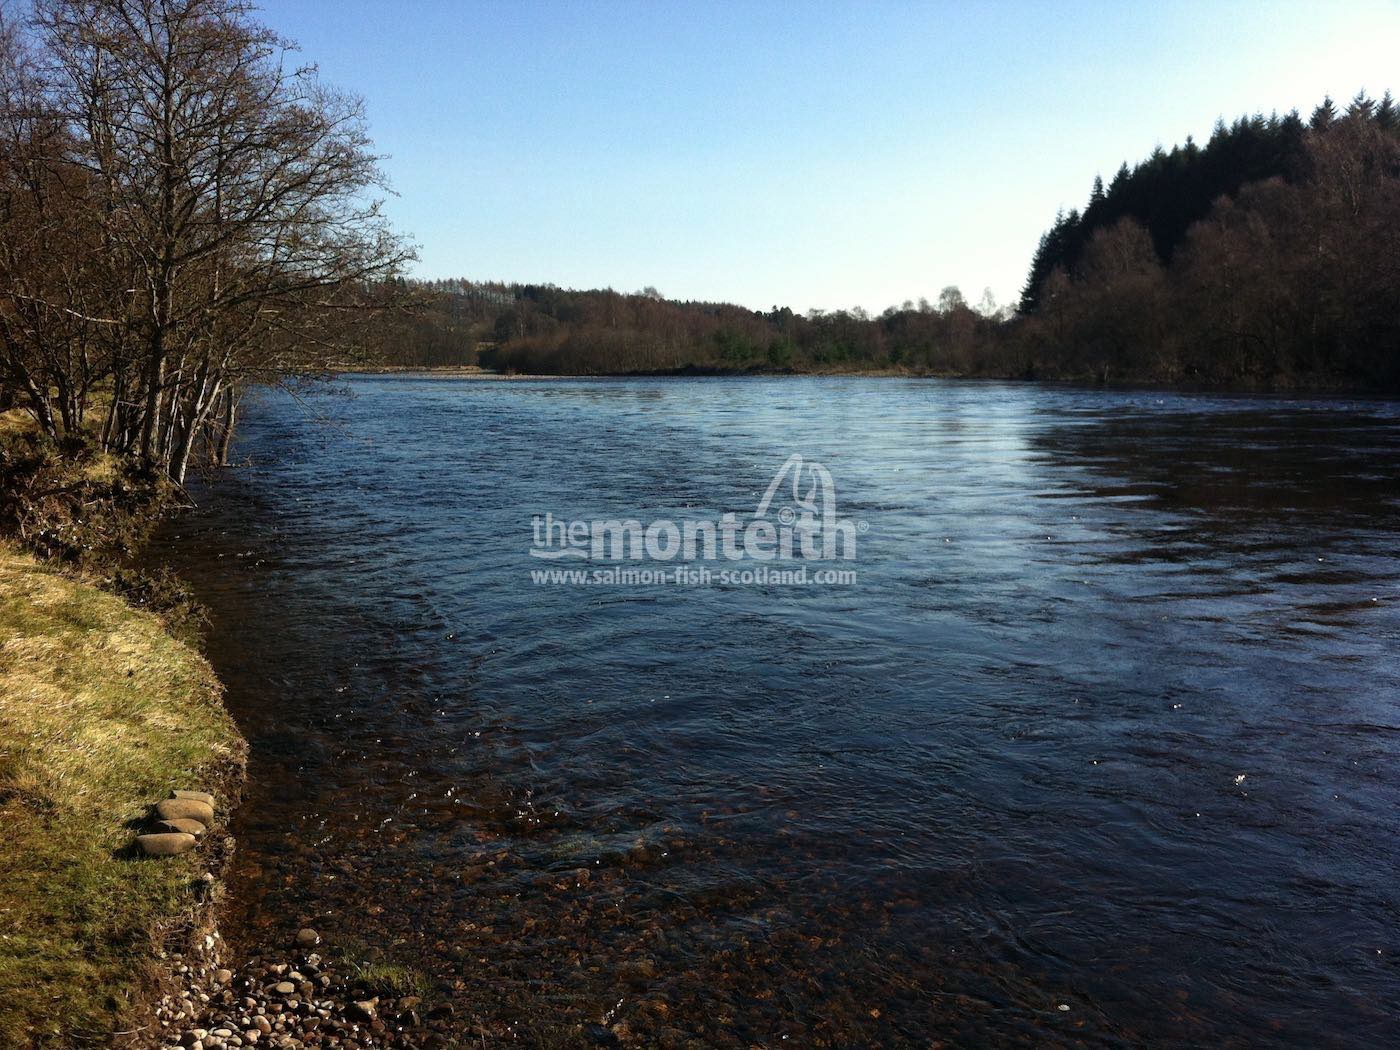 Lower Tummel 31